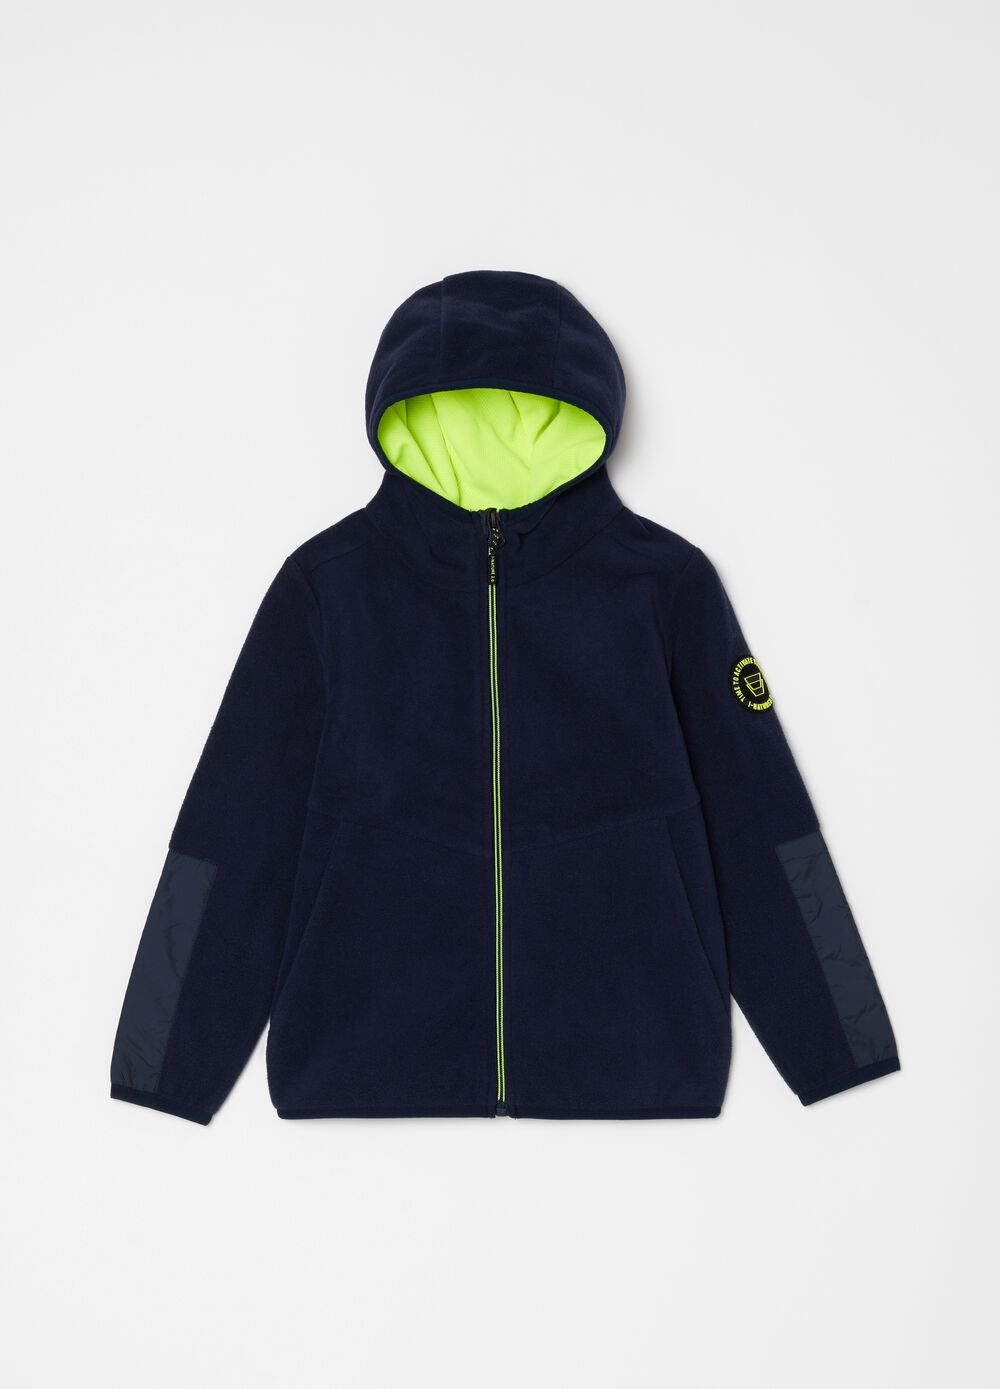 Fleece full-zip sweatshirt with functional pockets